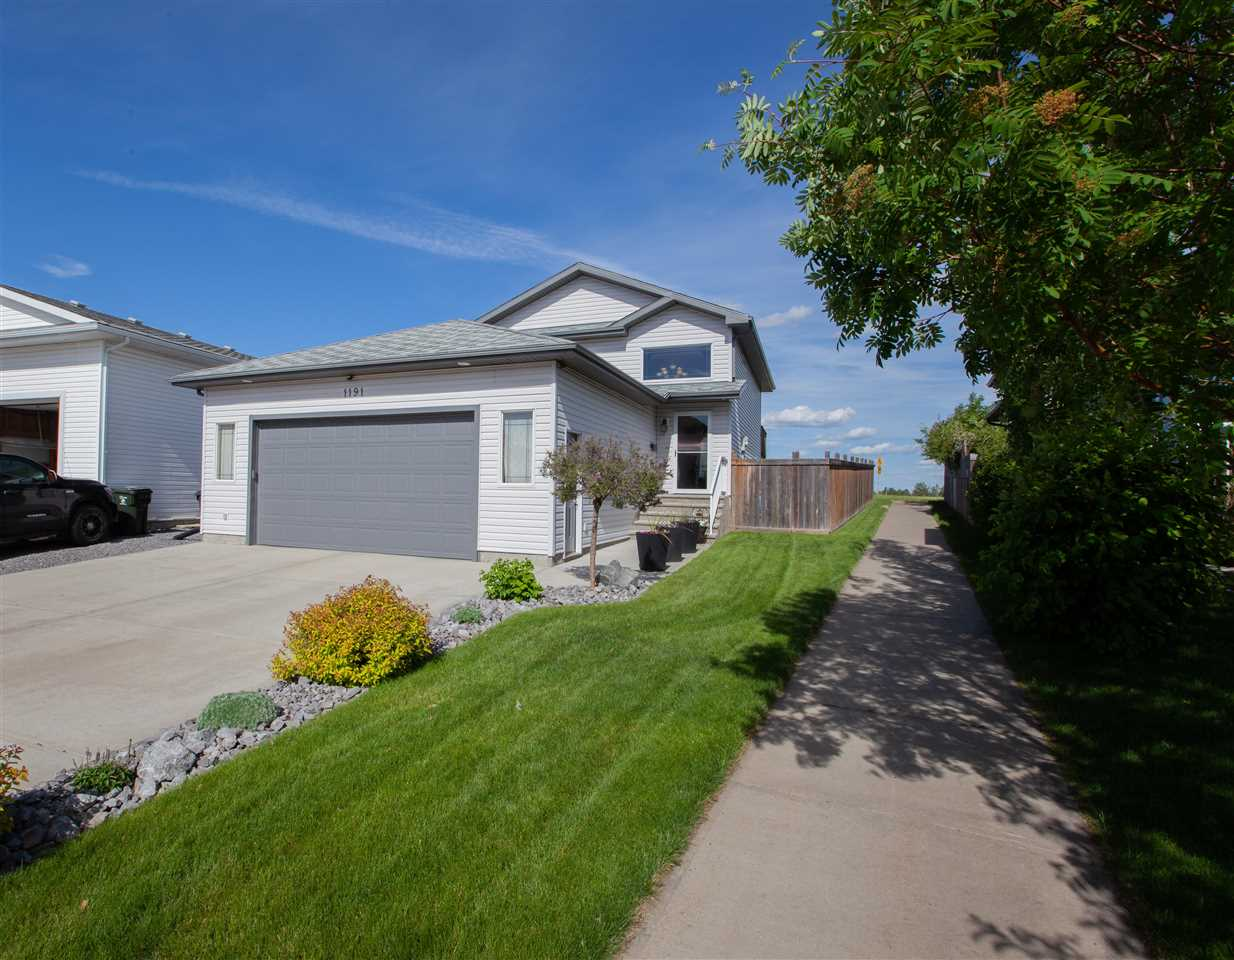 MLS® listing #E4169396 for sale located at 1191 OAKLAND Drive